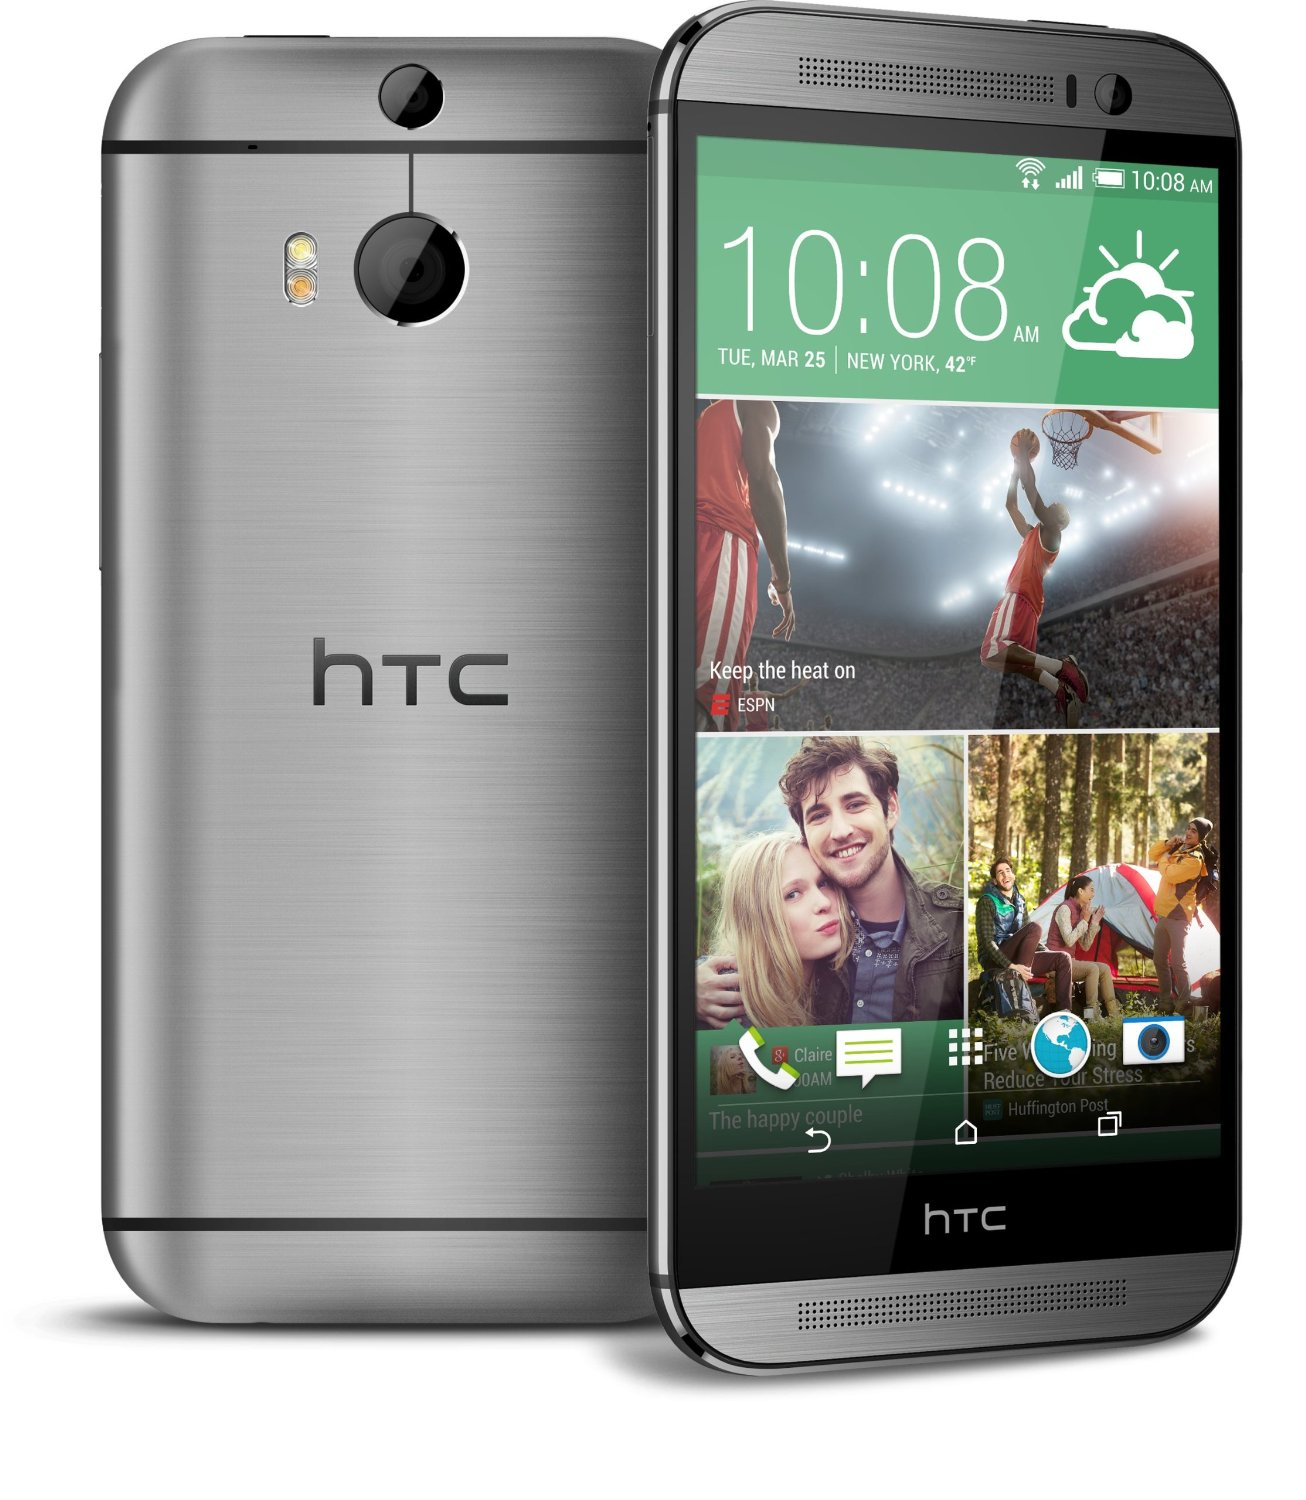 htc one m8 au meilleur prix sur amazon meilleur mobile. Black Bedroom Furniture Sets. Home Design Ideas